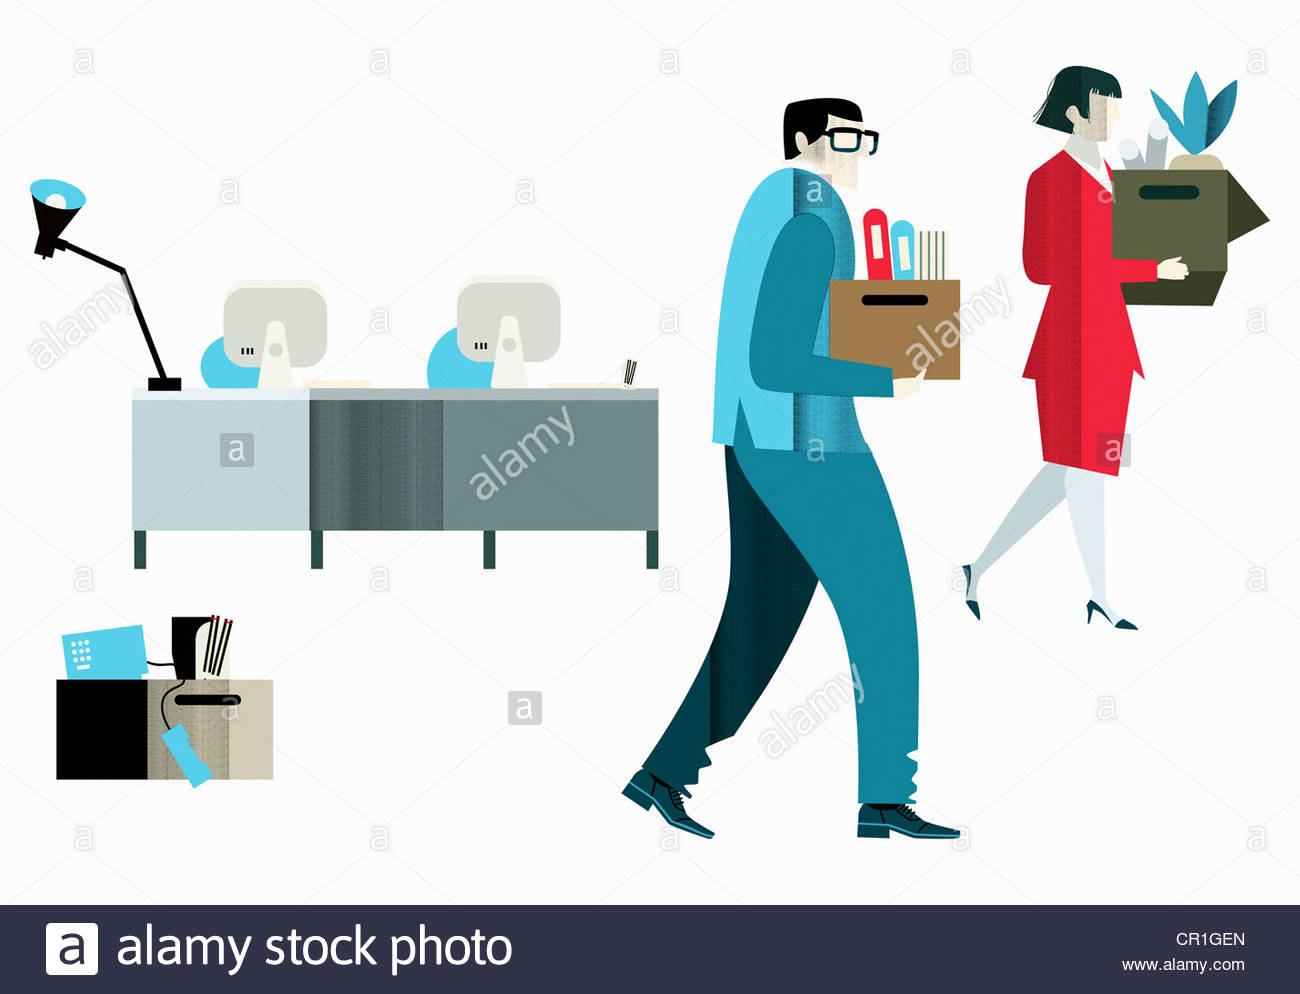 Office workers leaving with belongings - Stock Image